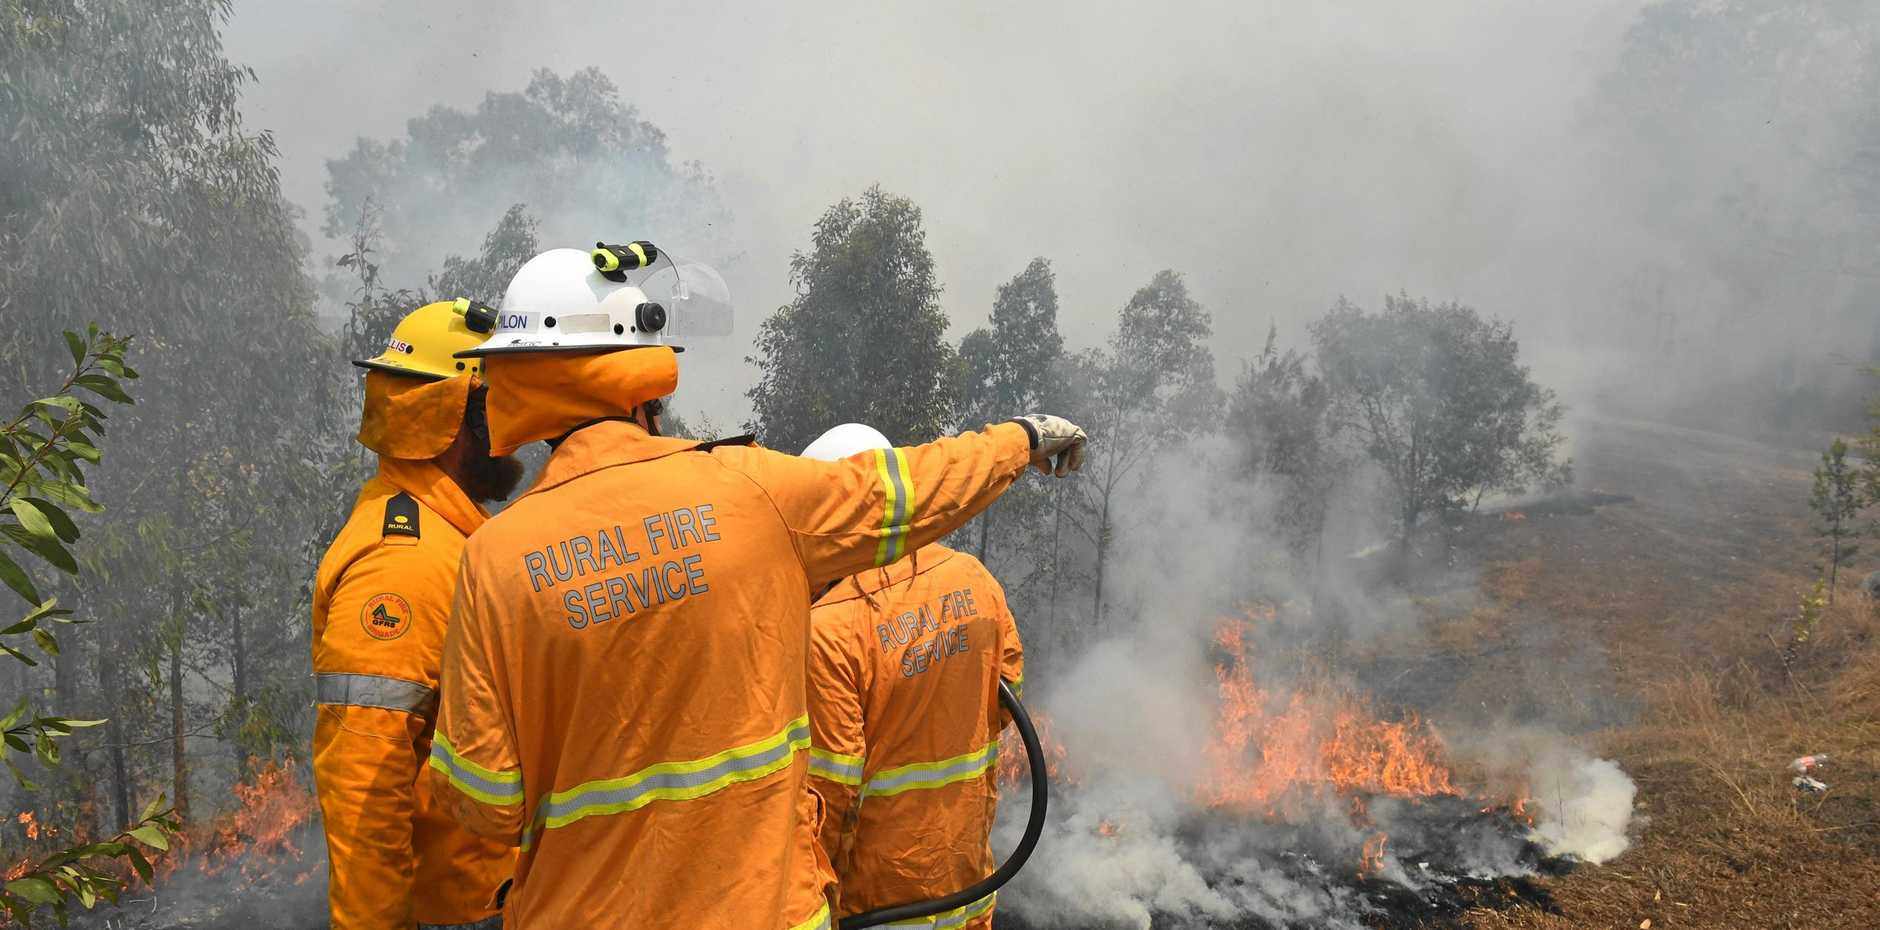 FIRE SEASON APPROACHES: The NSW Rural Fire Service is warning landholders to prepare for a